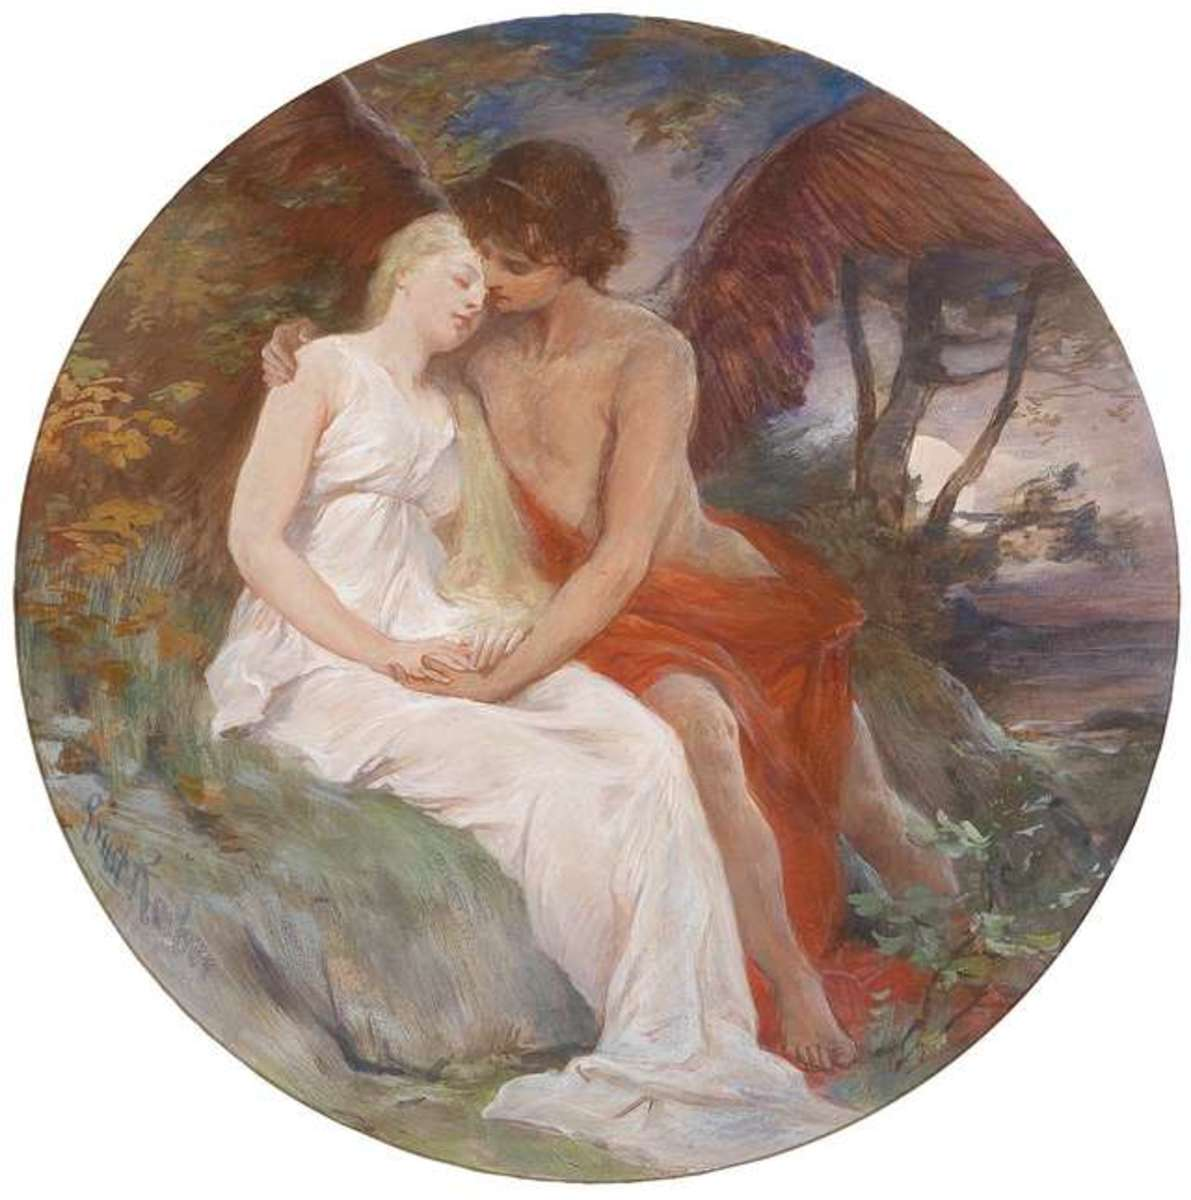 Amor and Psyche by Ernst Roeber